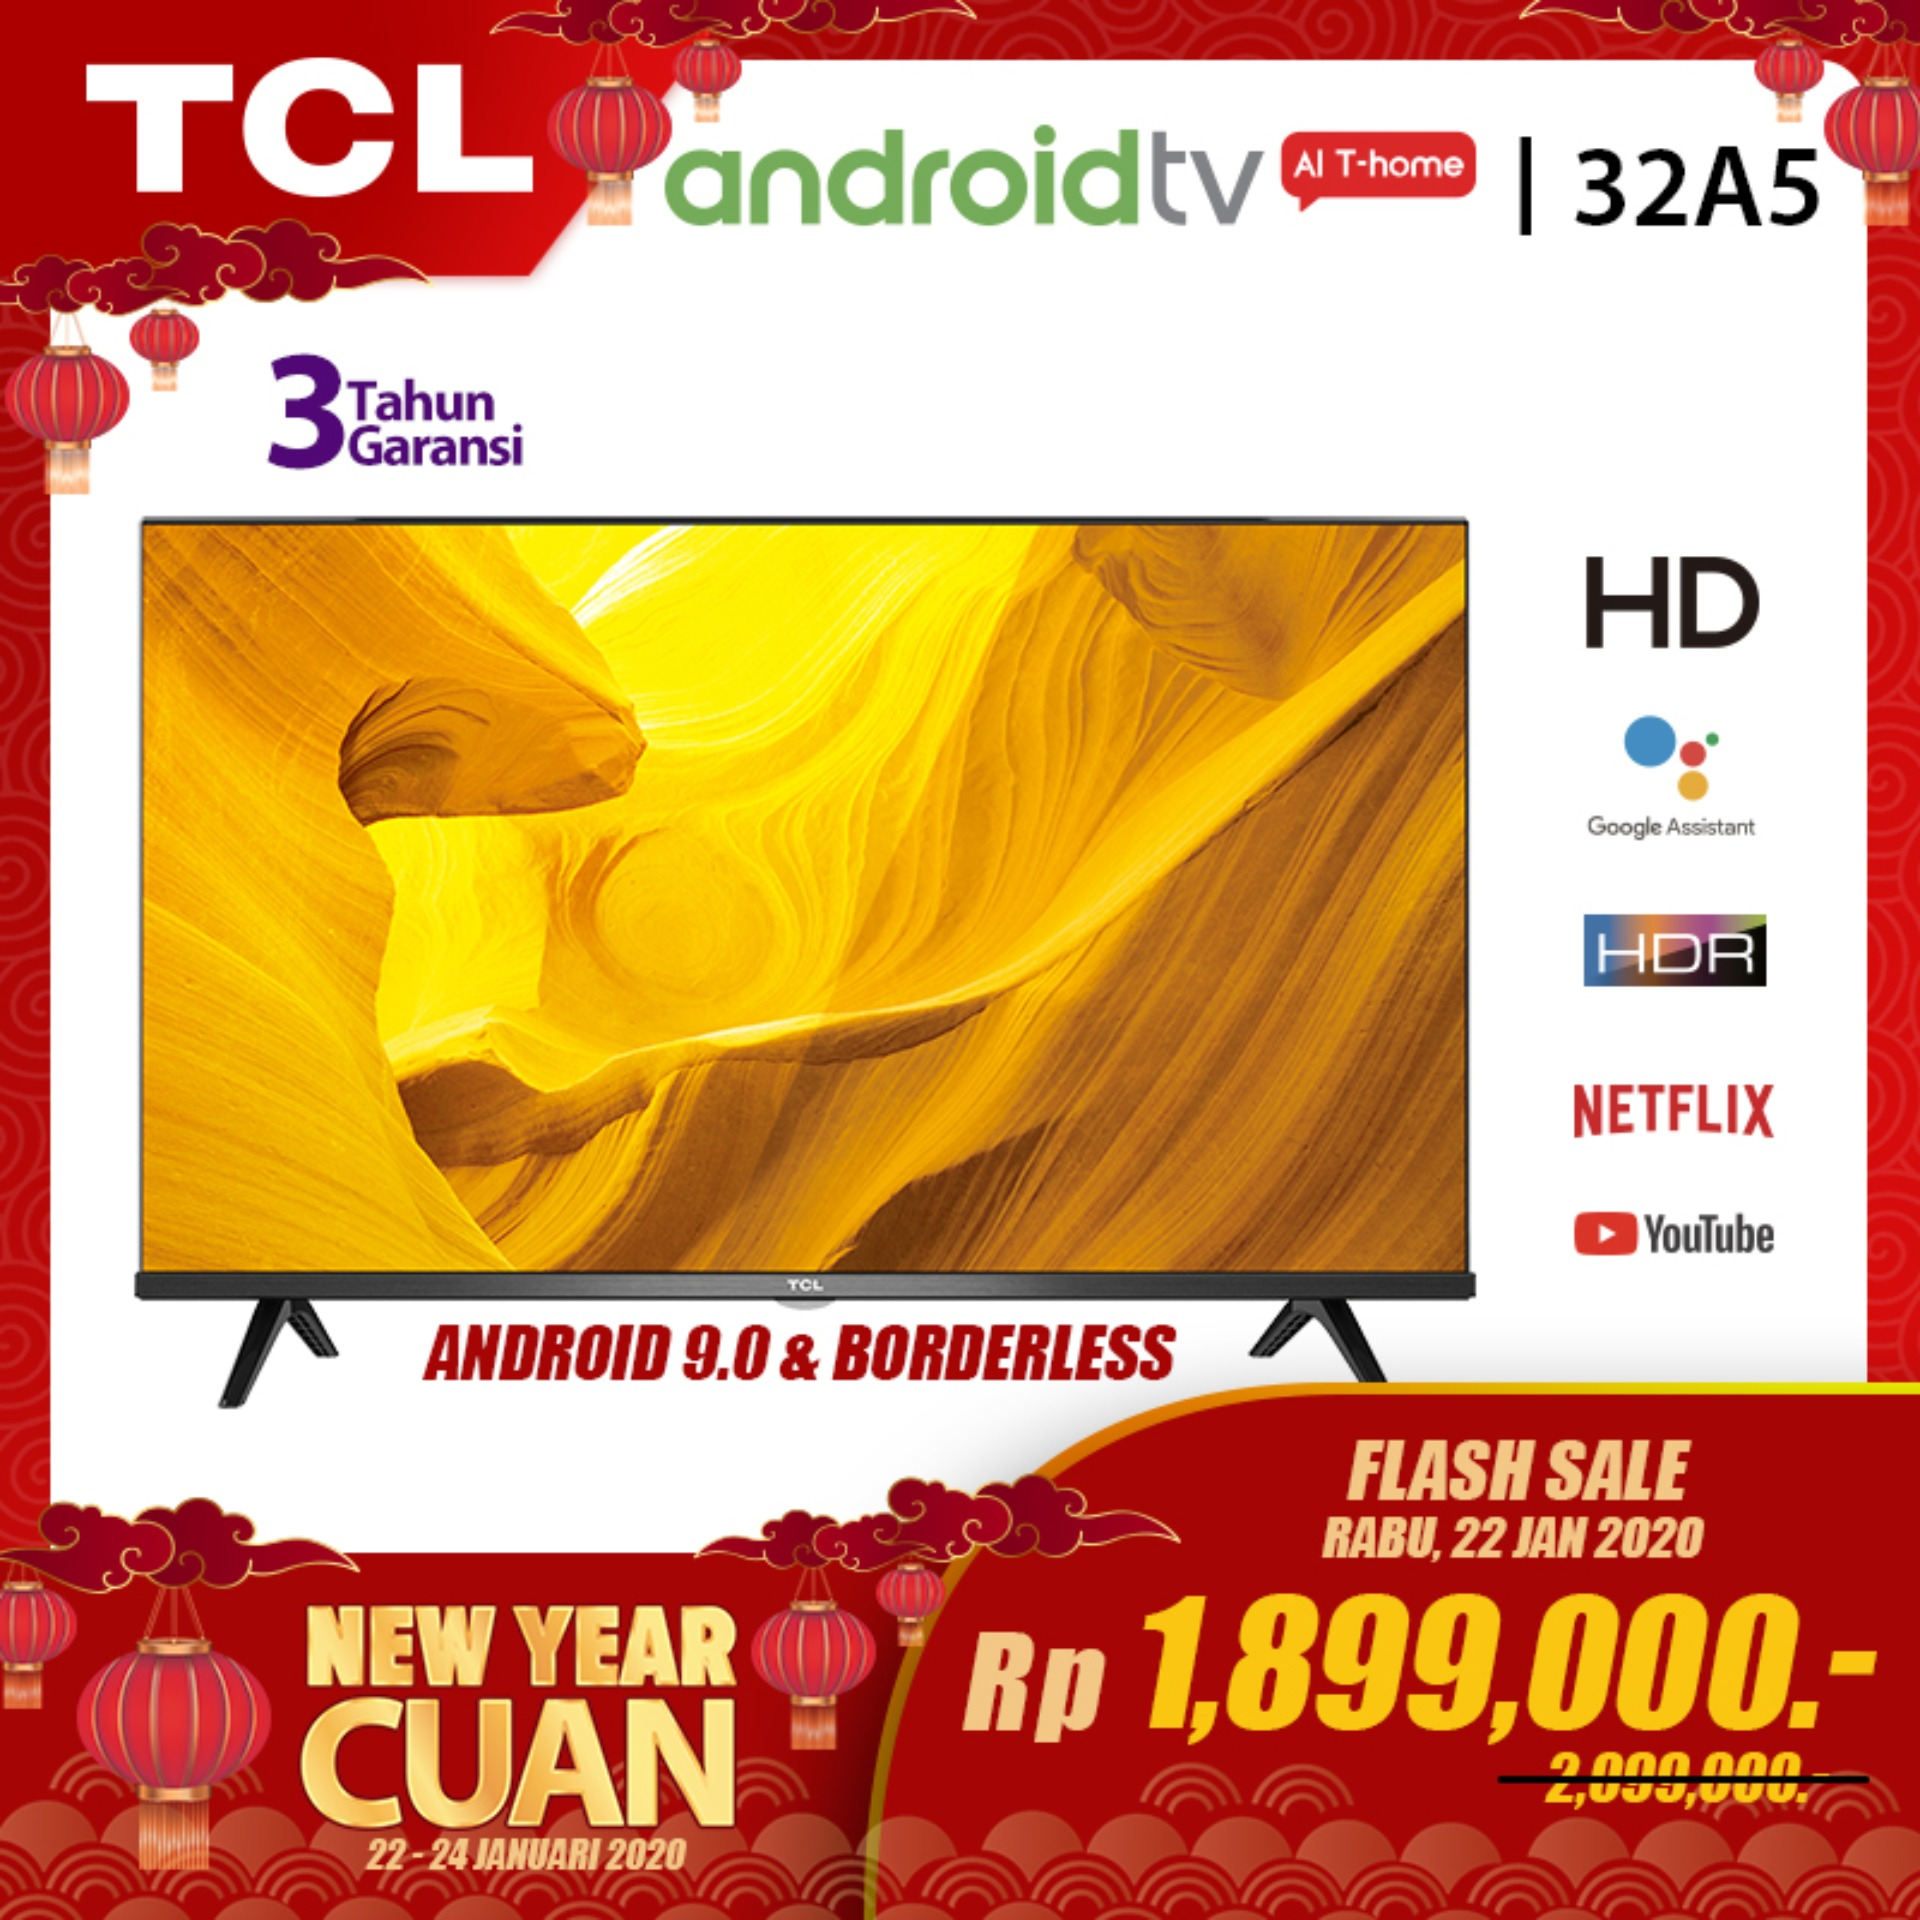 [LAZADA EXCLUSIVE] TCL NEW LED TV 32 inch - Smart Android TV - BORDERLESS - HD - WiFi - Google Voice - HDMI//USB - AI - Dolby Sound (model 32A5)